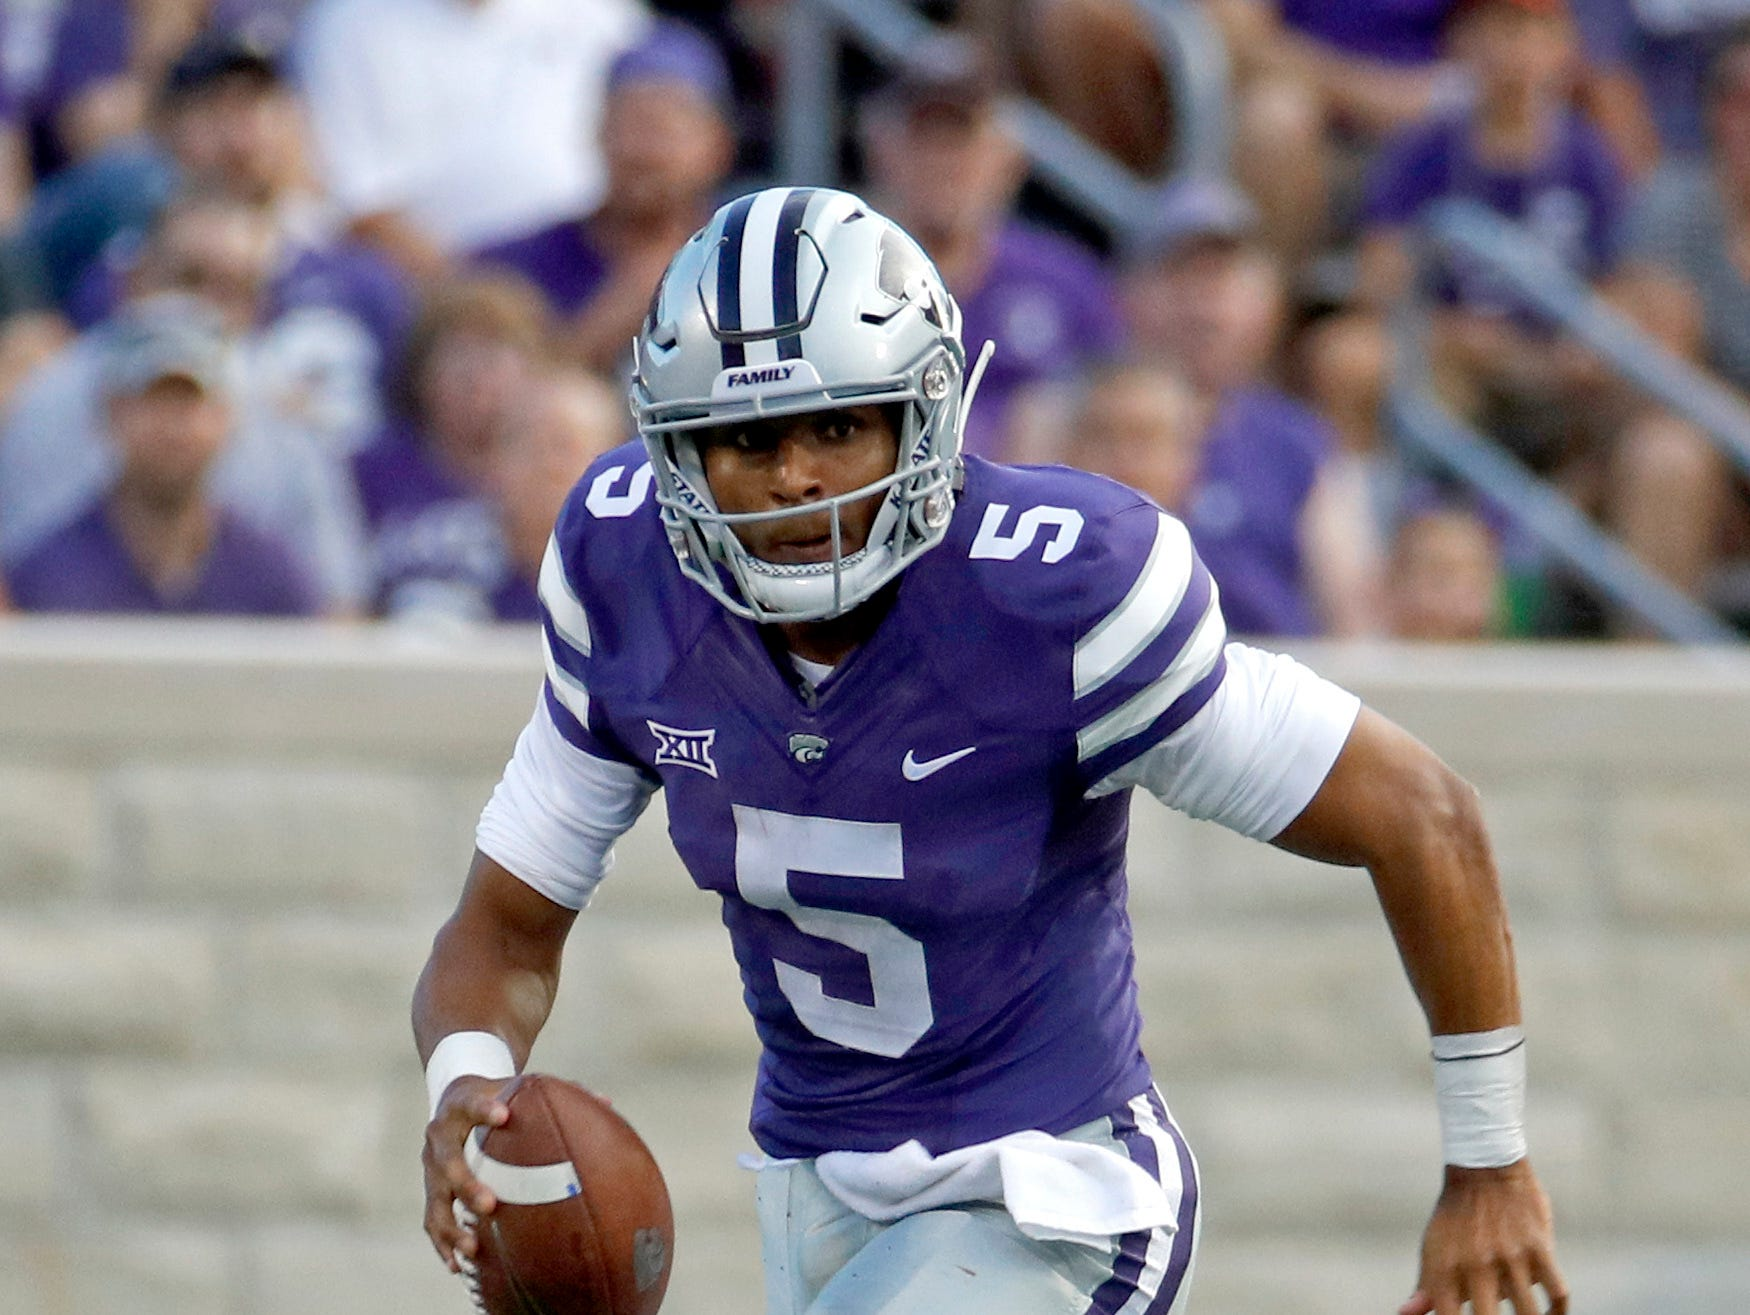 Kansas State quarterback Alex Delton (5) runs the ball for a first down during the first half of an NCAA college football game against South Dakota Saturday, Sept. 1, 2018, in Manhattan, Kan. (AP Photo/Charlie Riedel)